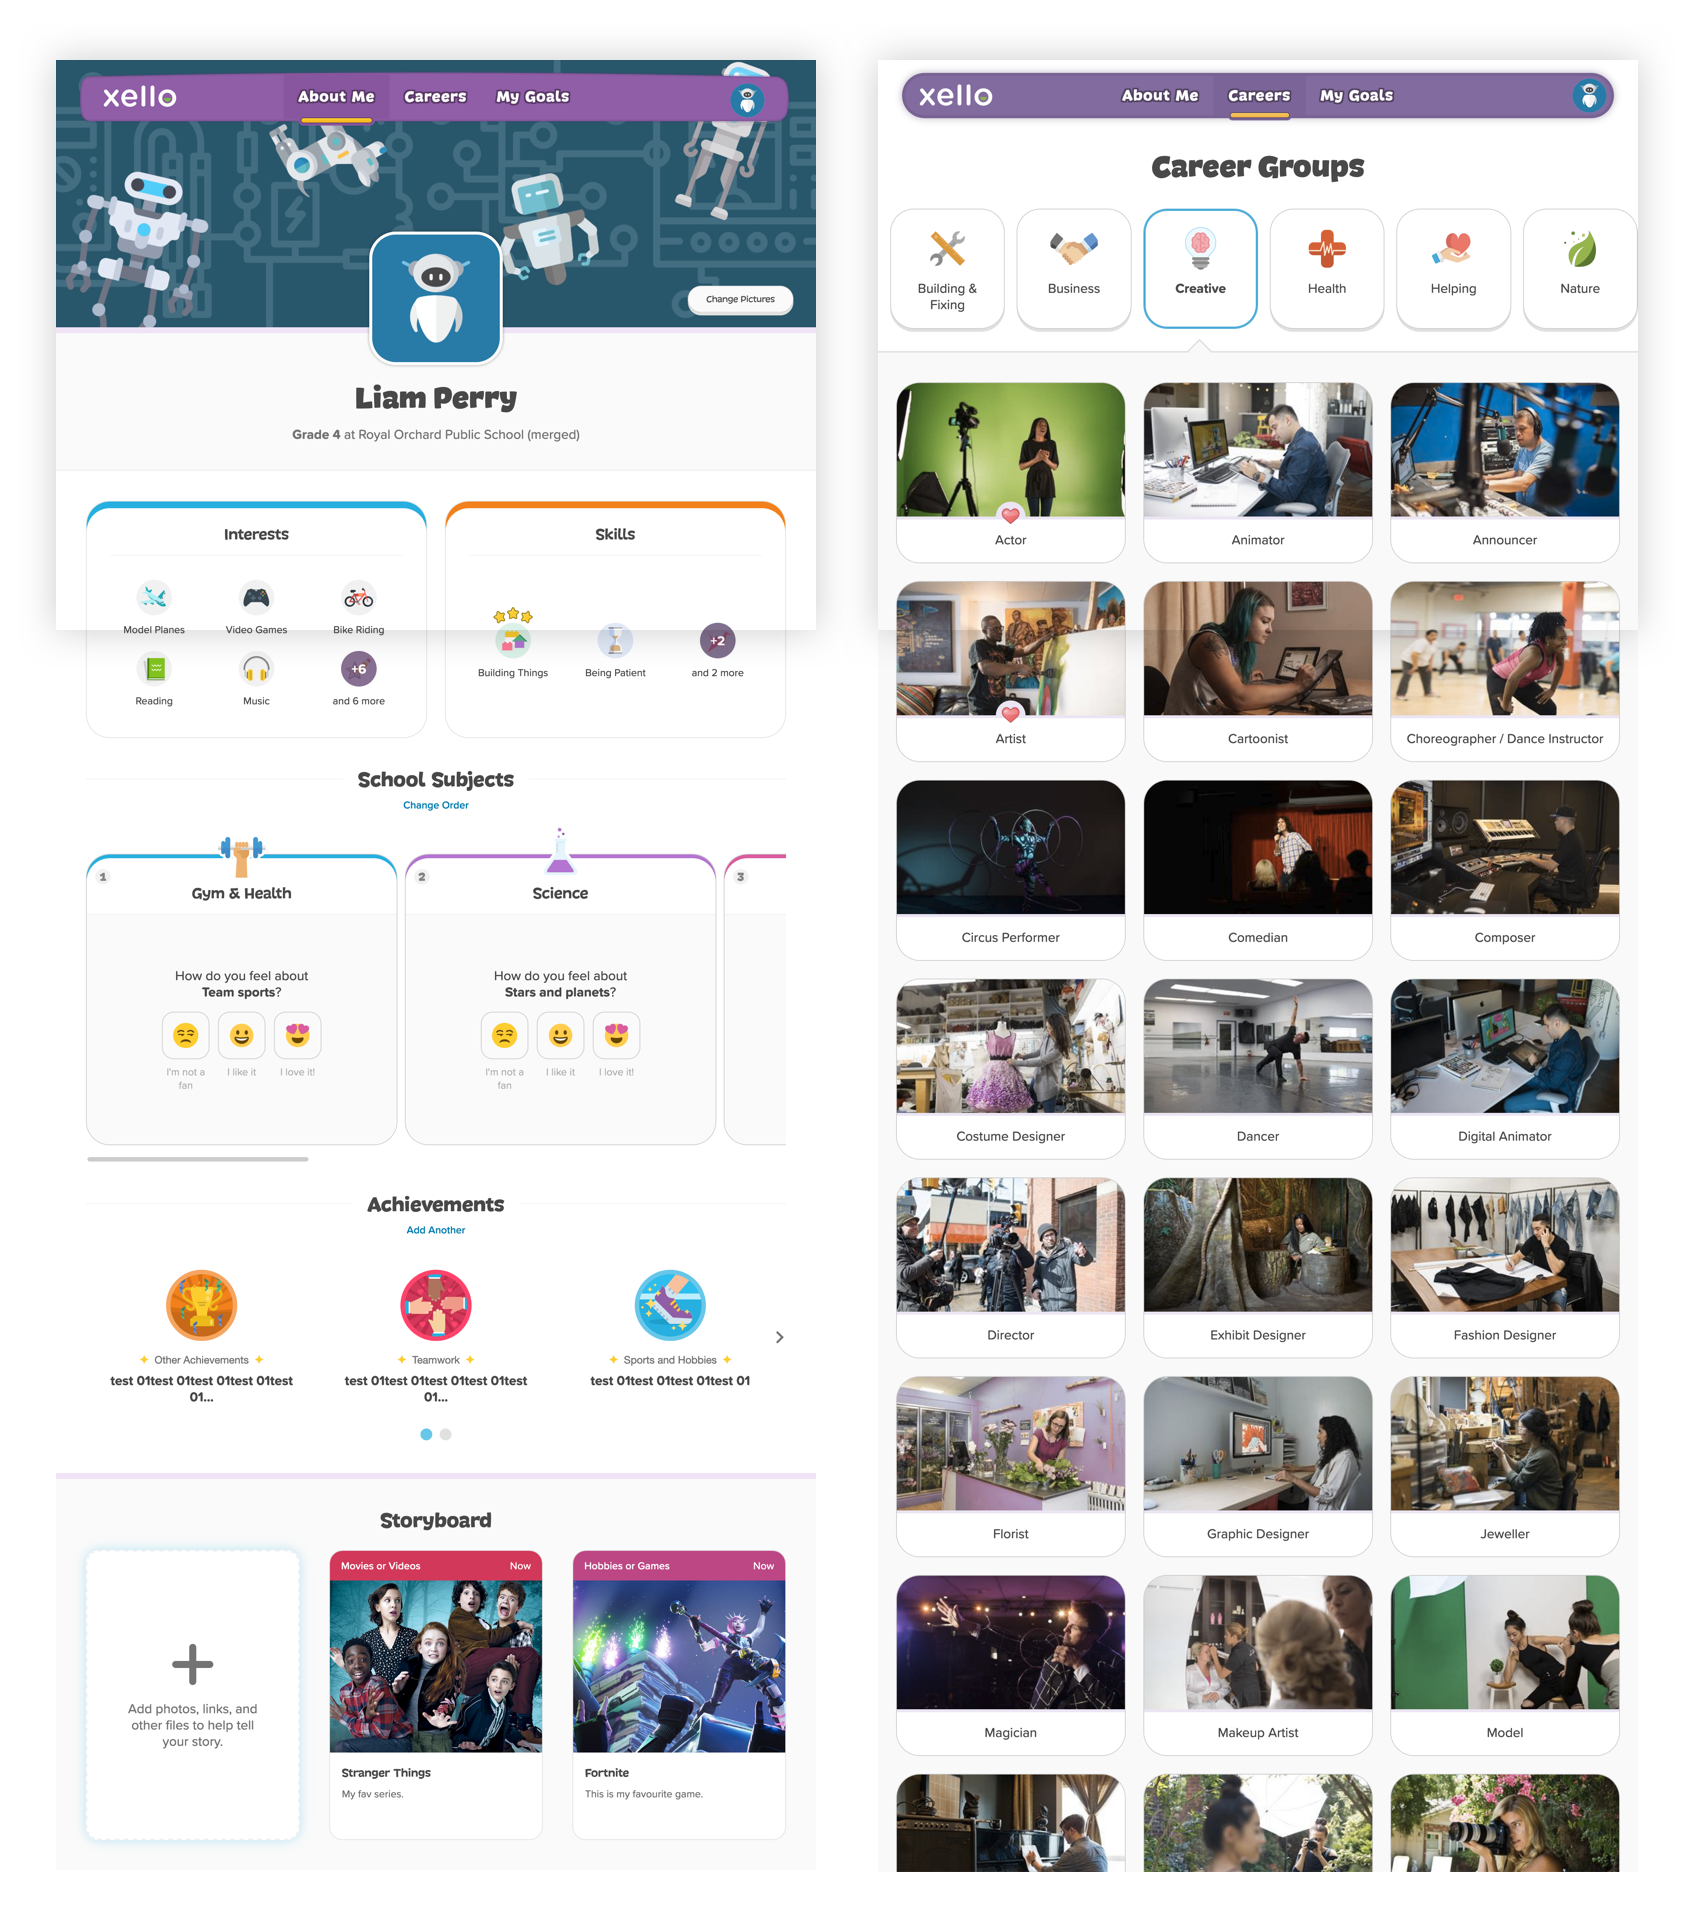 Profile page and Career Explore page